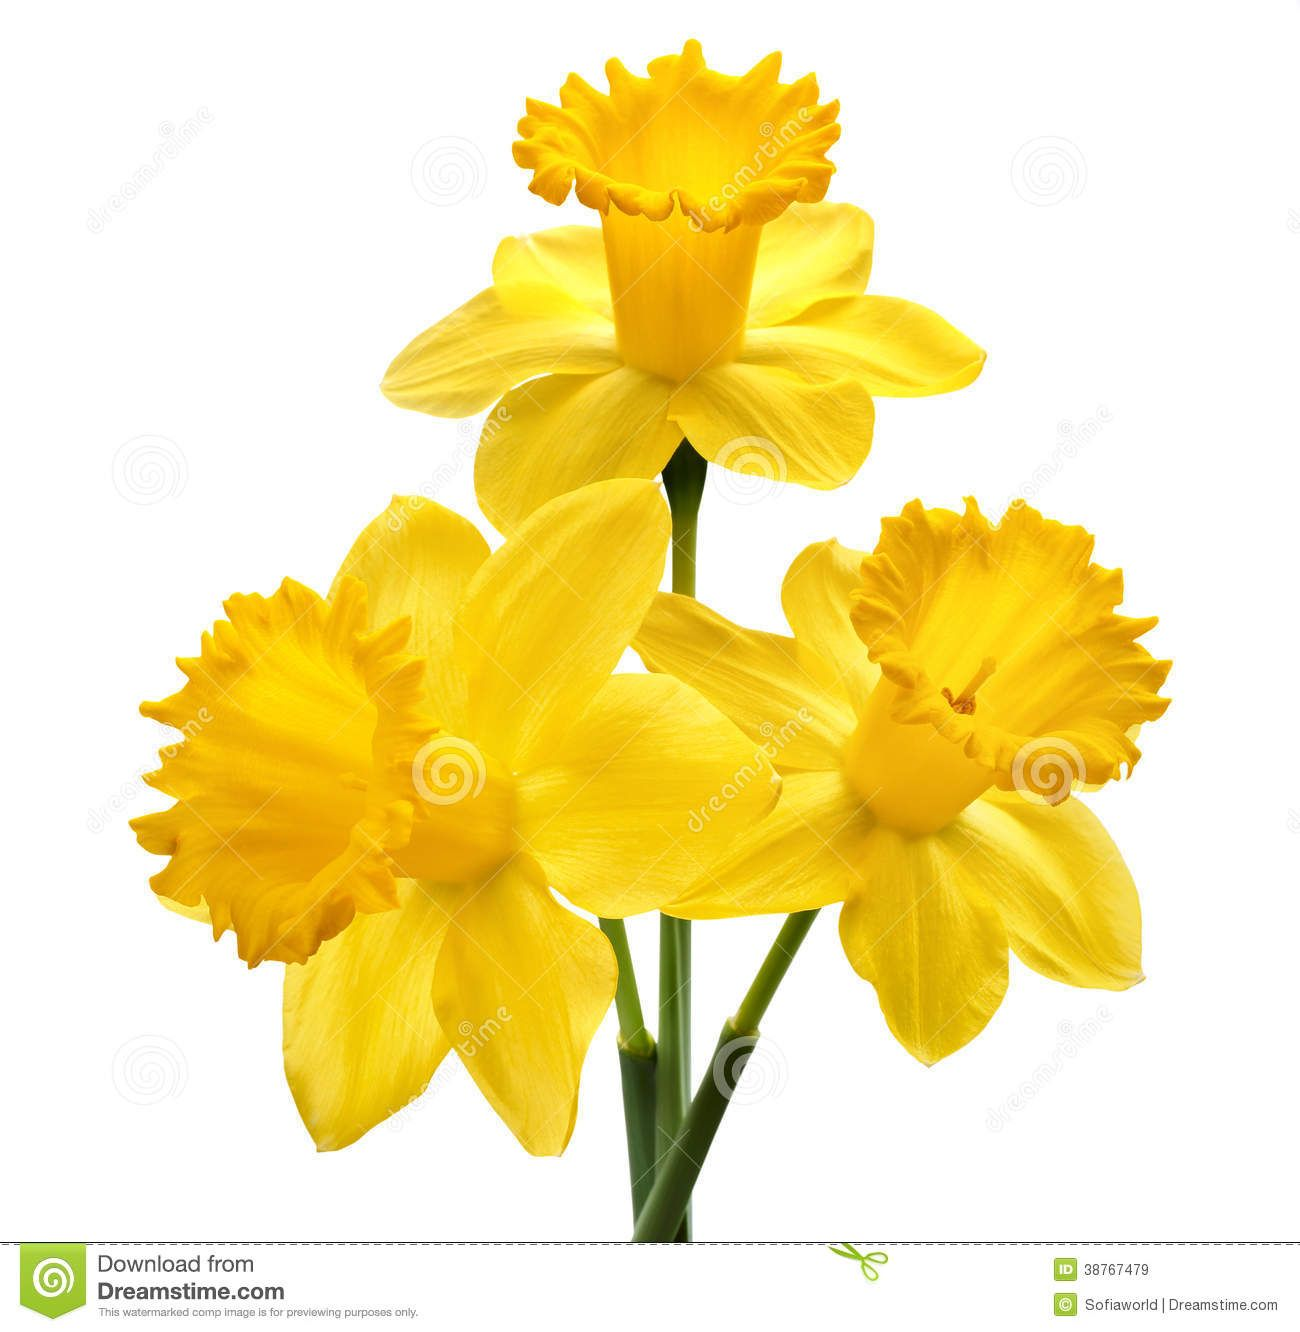 Image Result For Daffodils Images Free Download Daffodil Images Daffodils Flowers